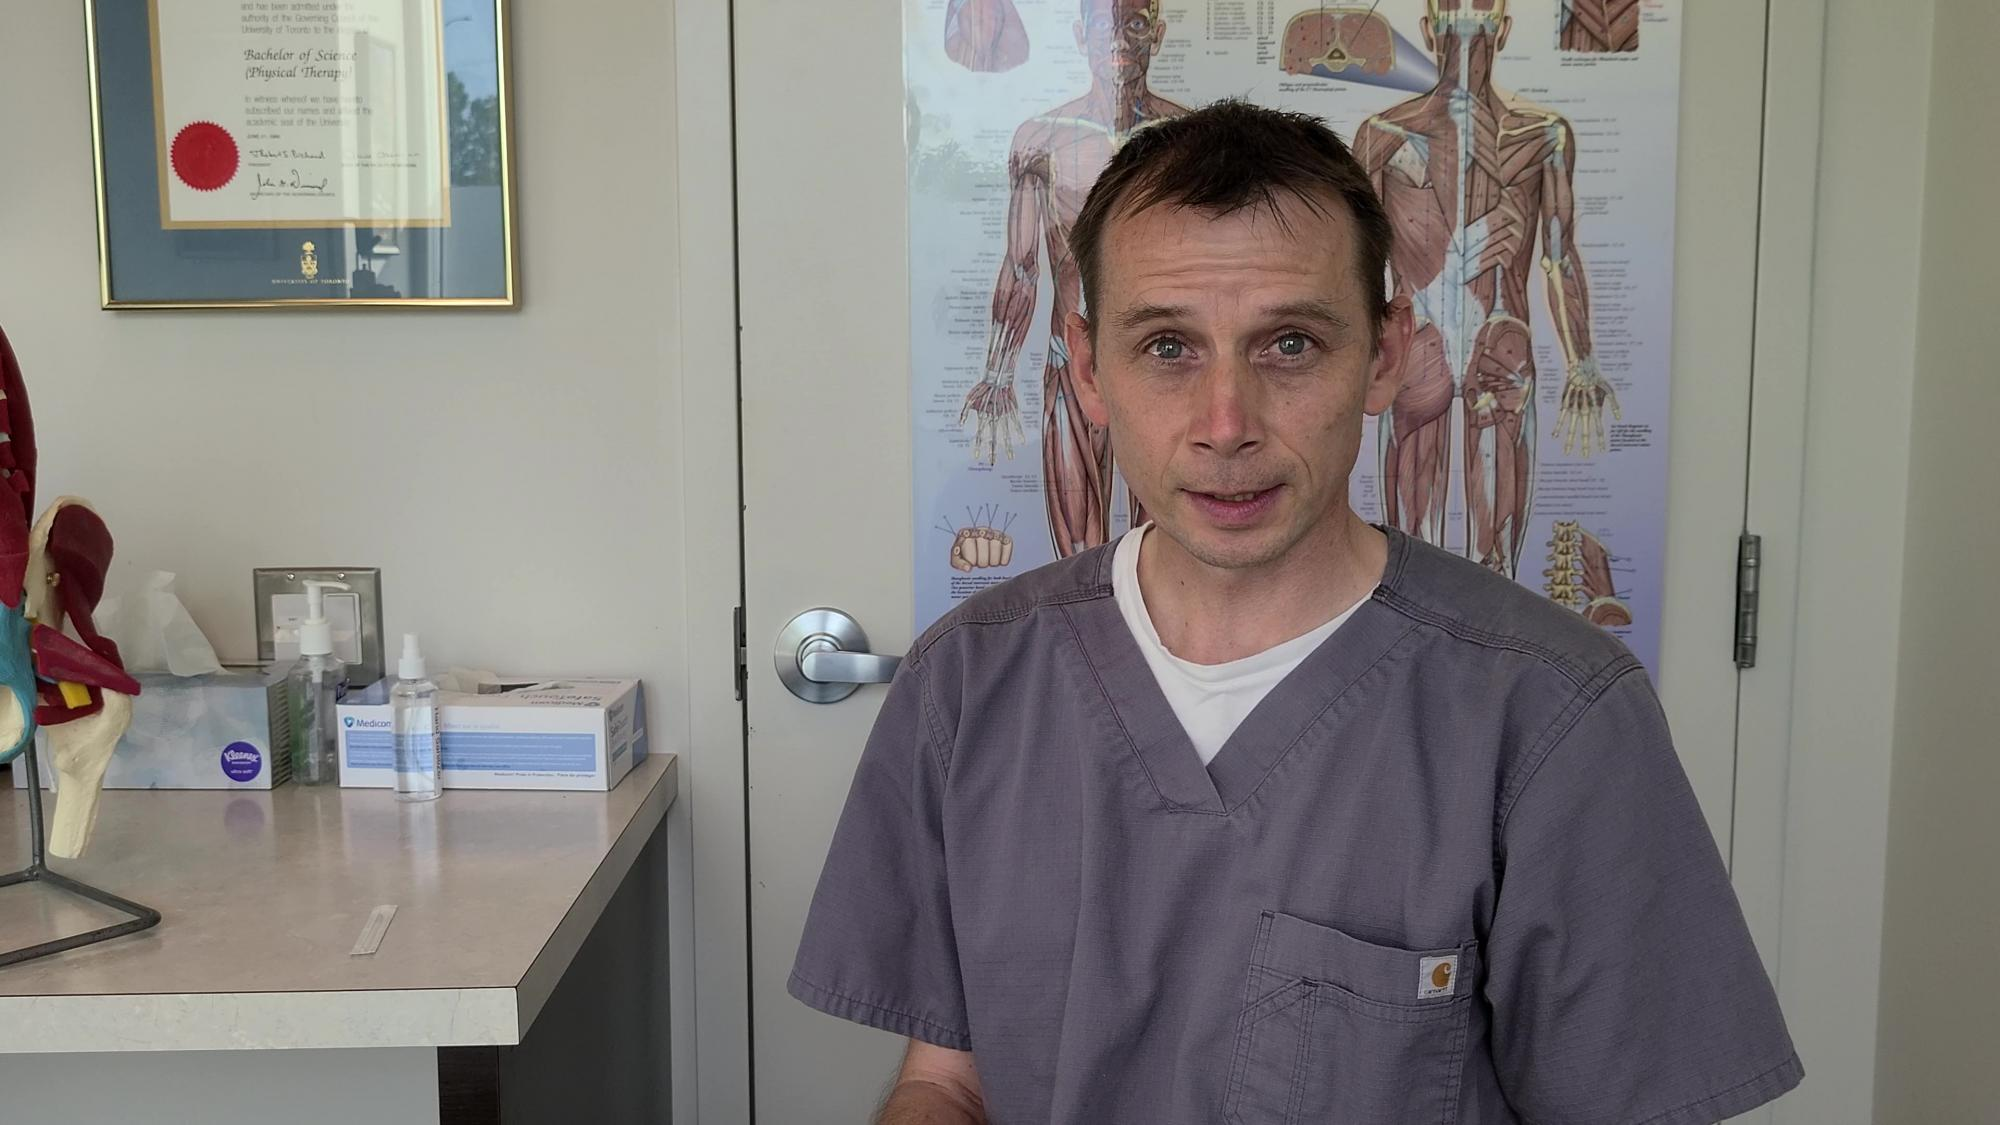 Rob Holmes, Calgary Physiotherapist, in his clinic